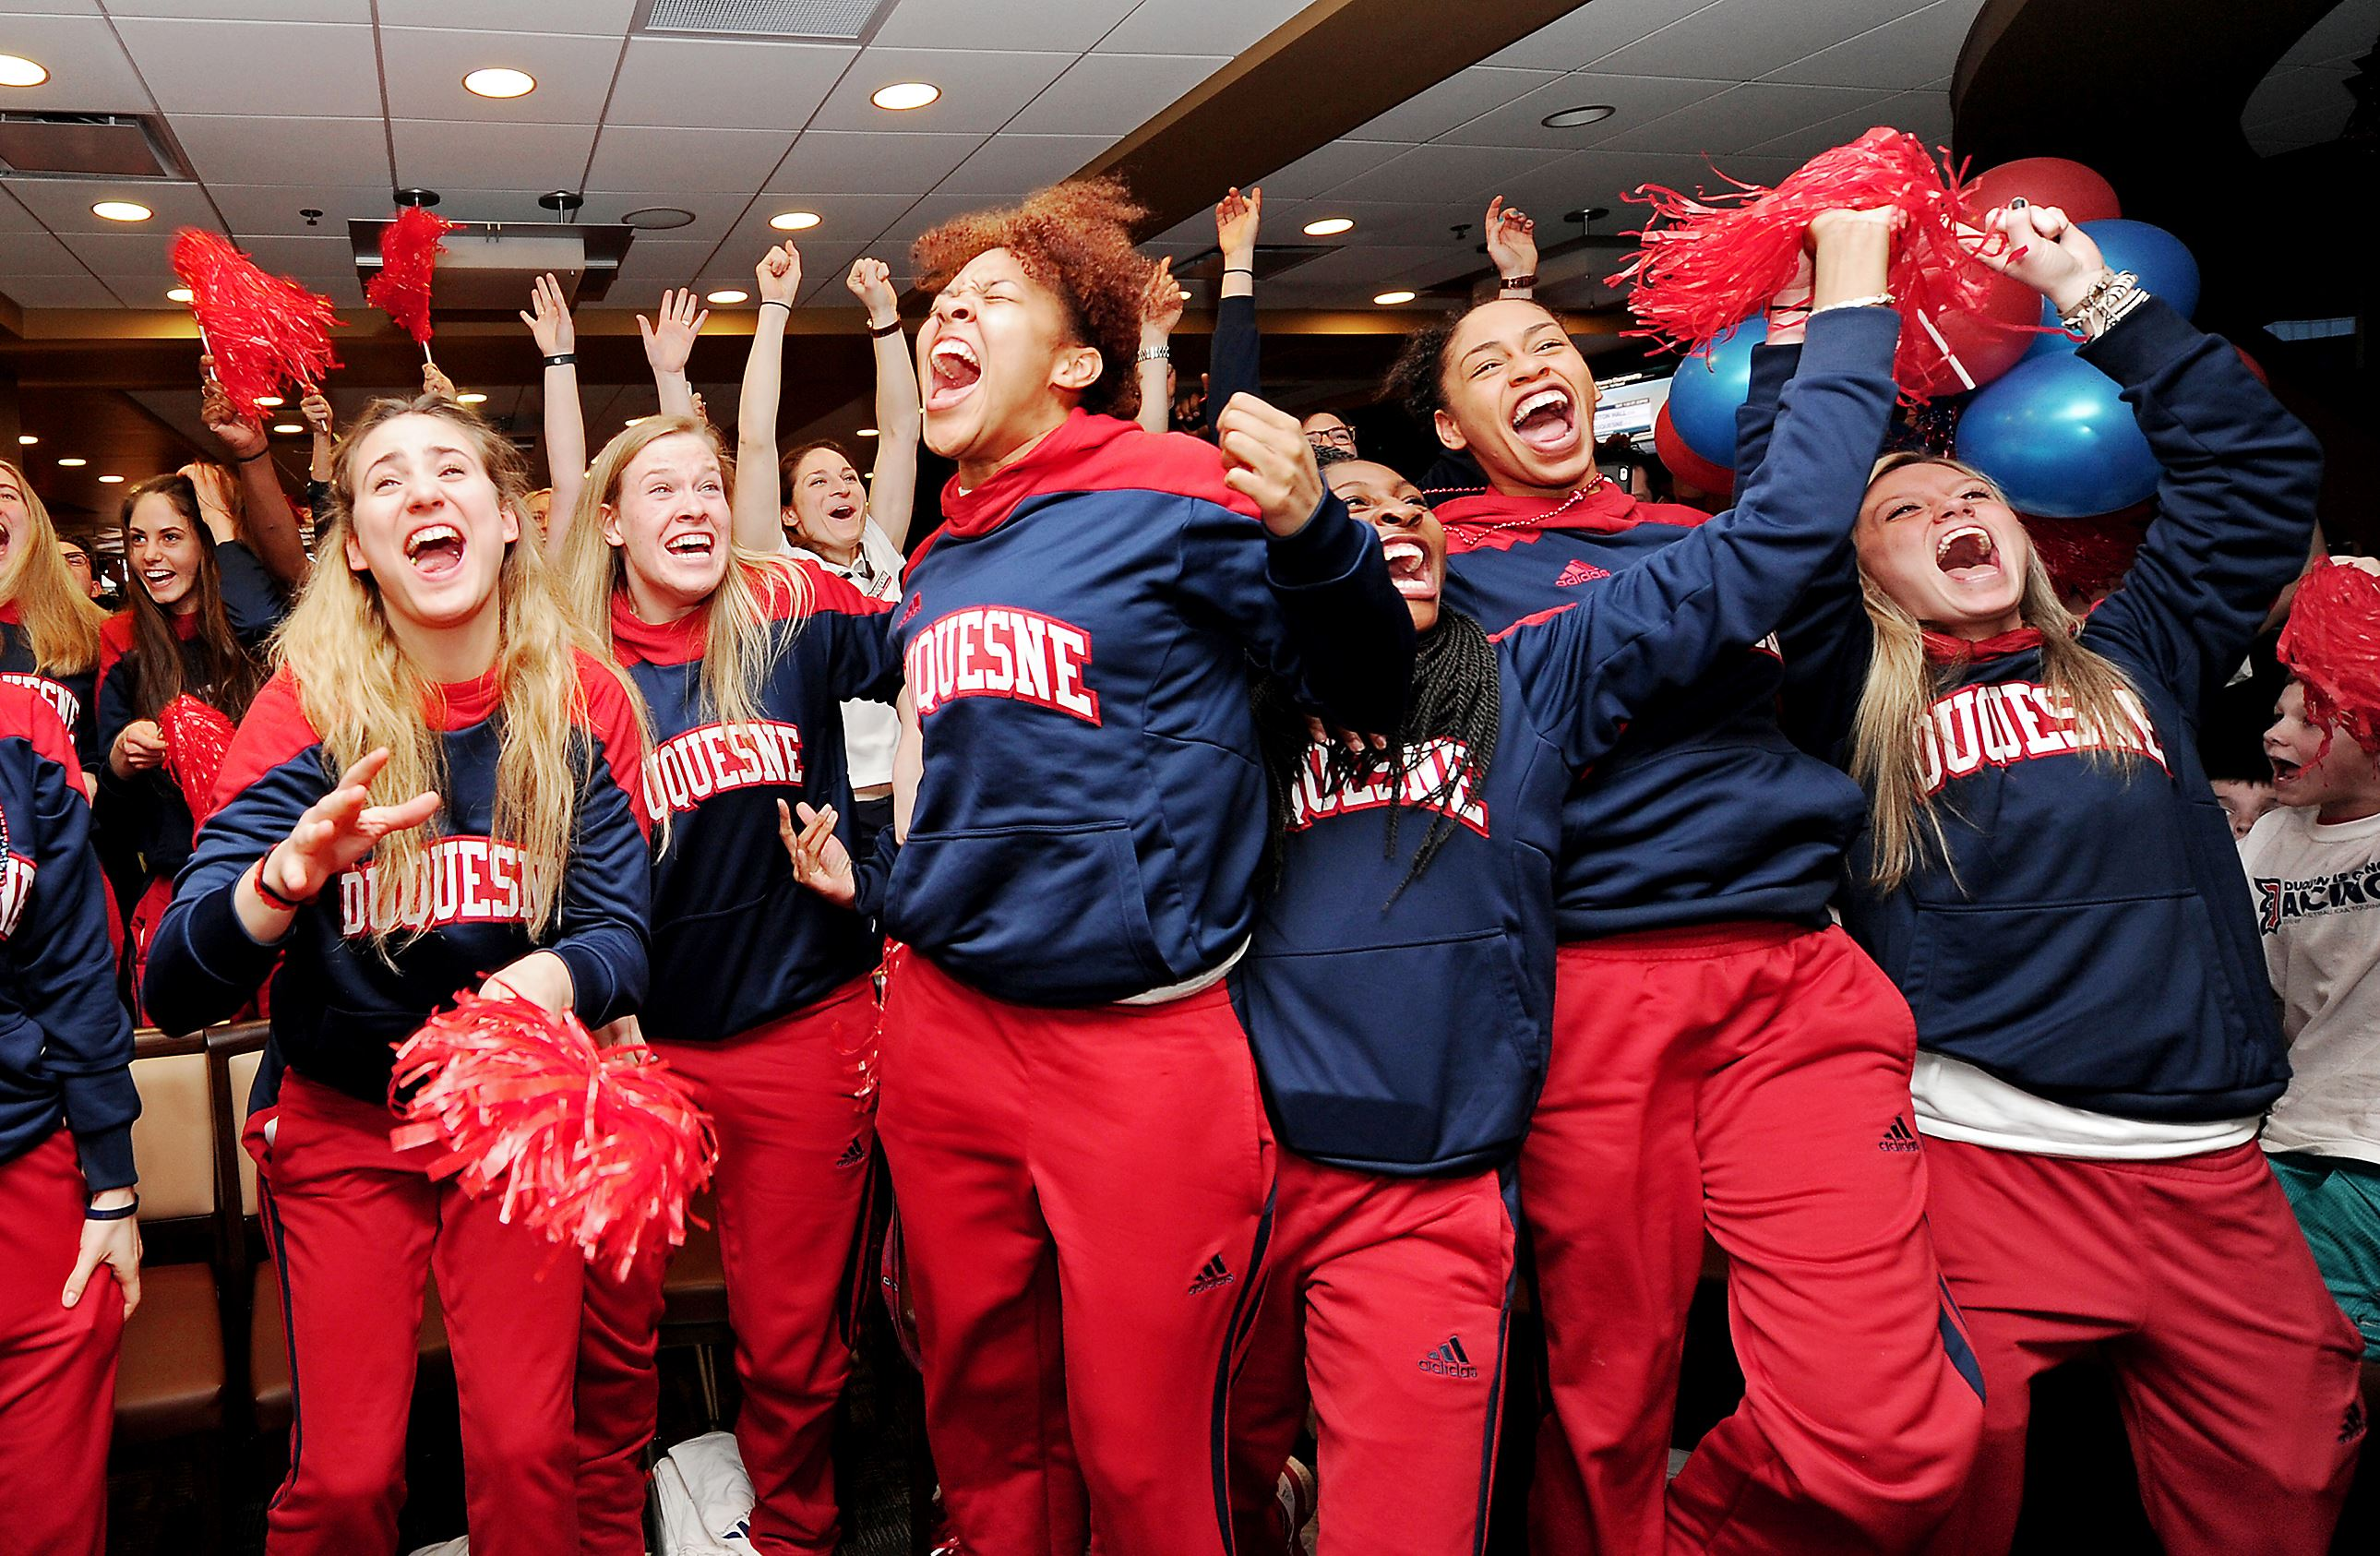 duquesne women Page for duquesne women's soccer program, including standings, roster and stats.